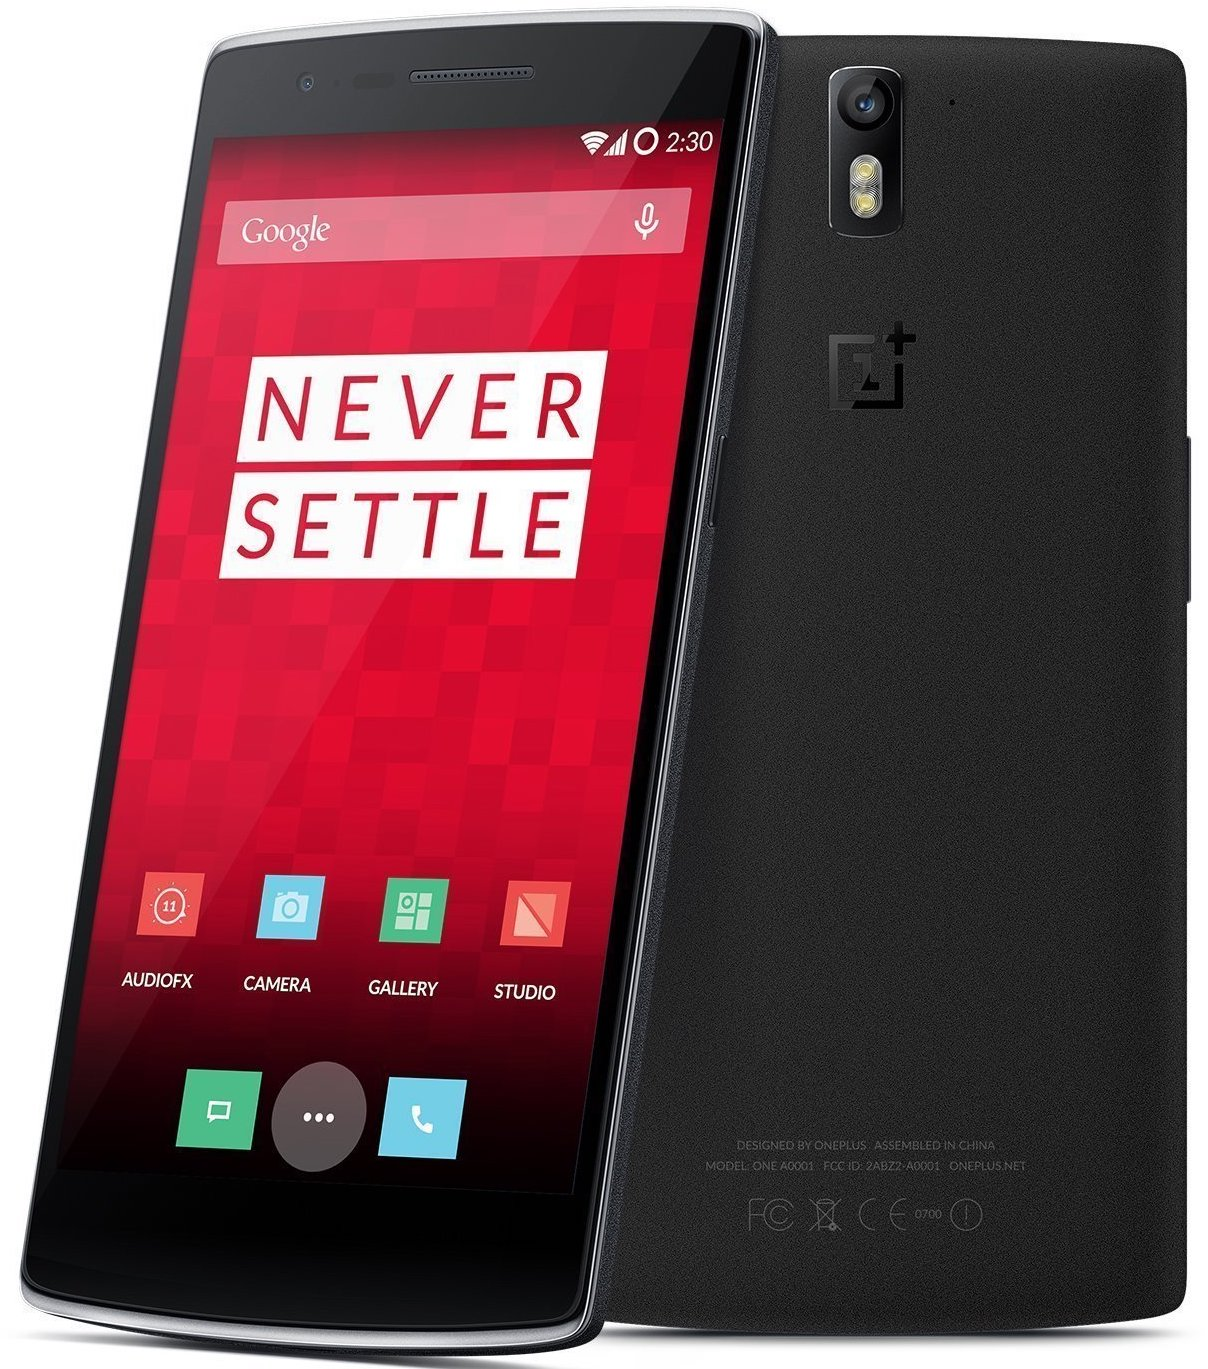 Offerta OnePlus One 64gb su TrovaUsati.it